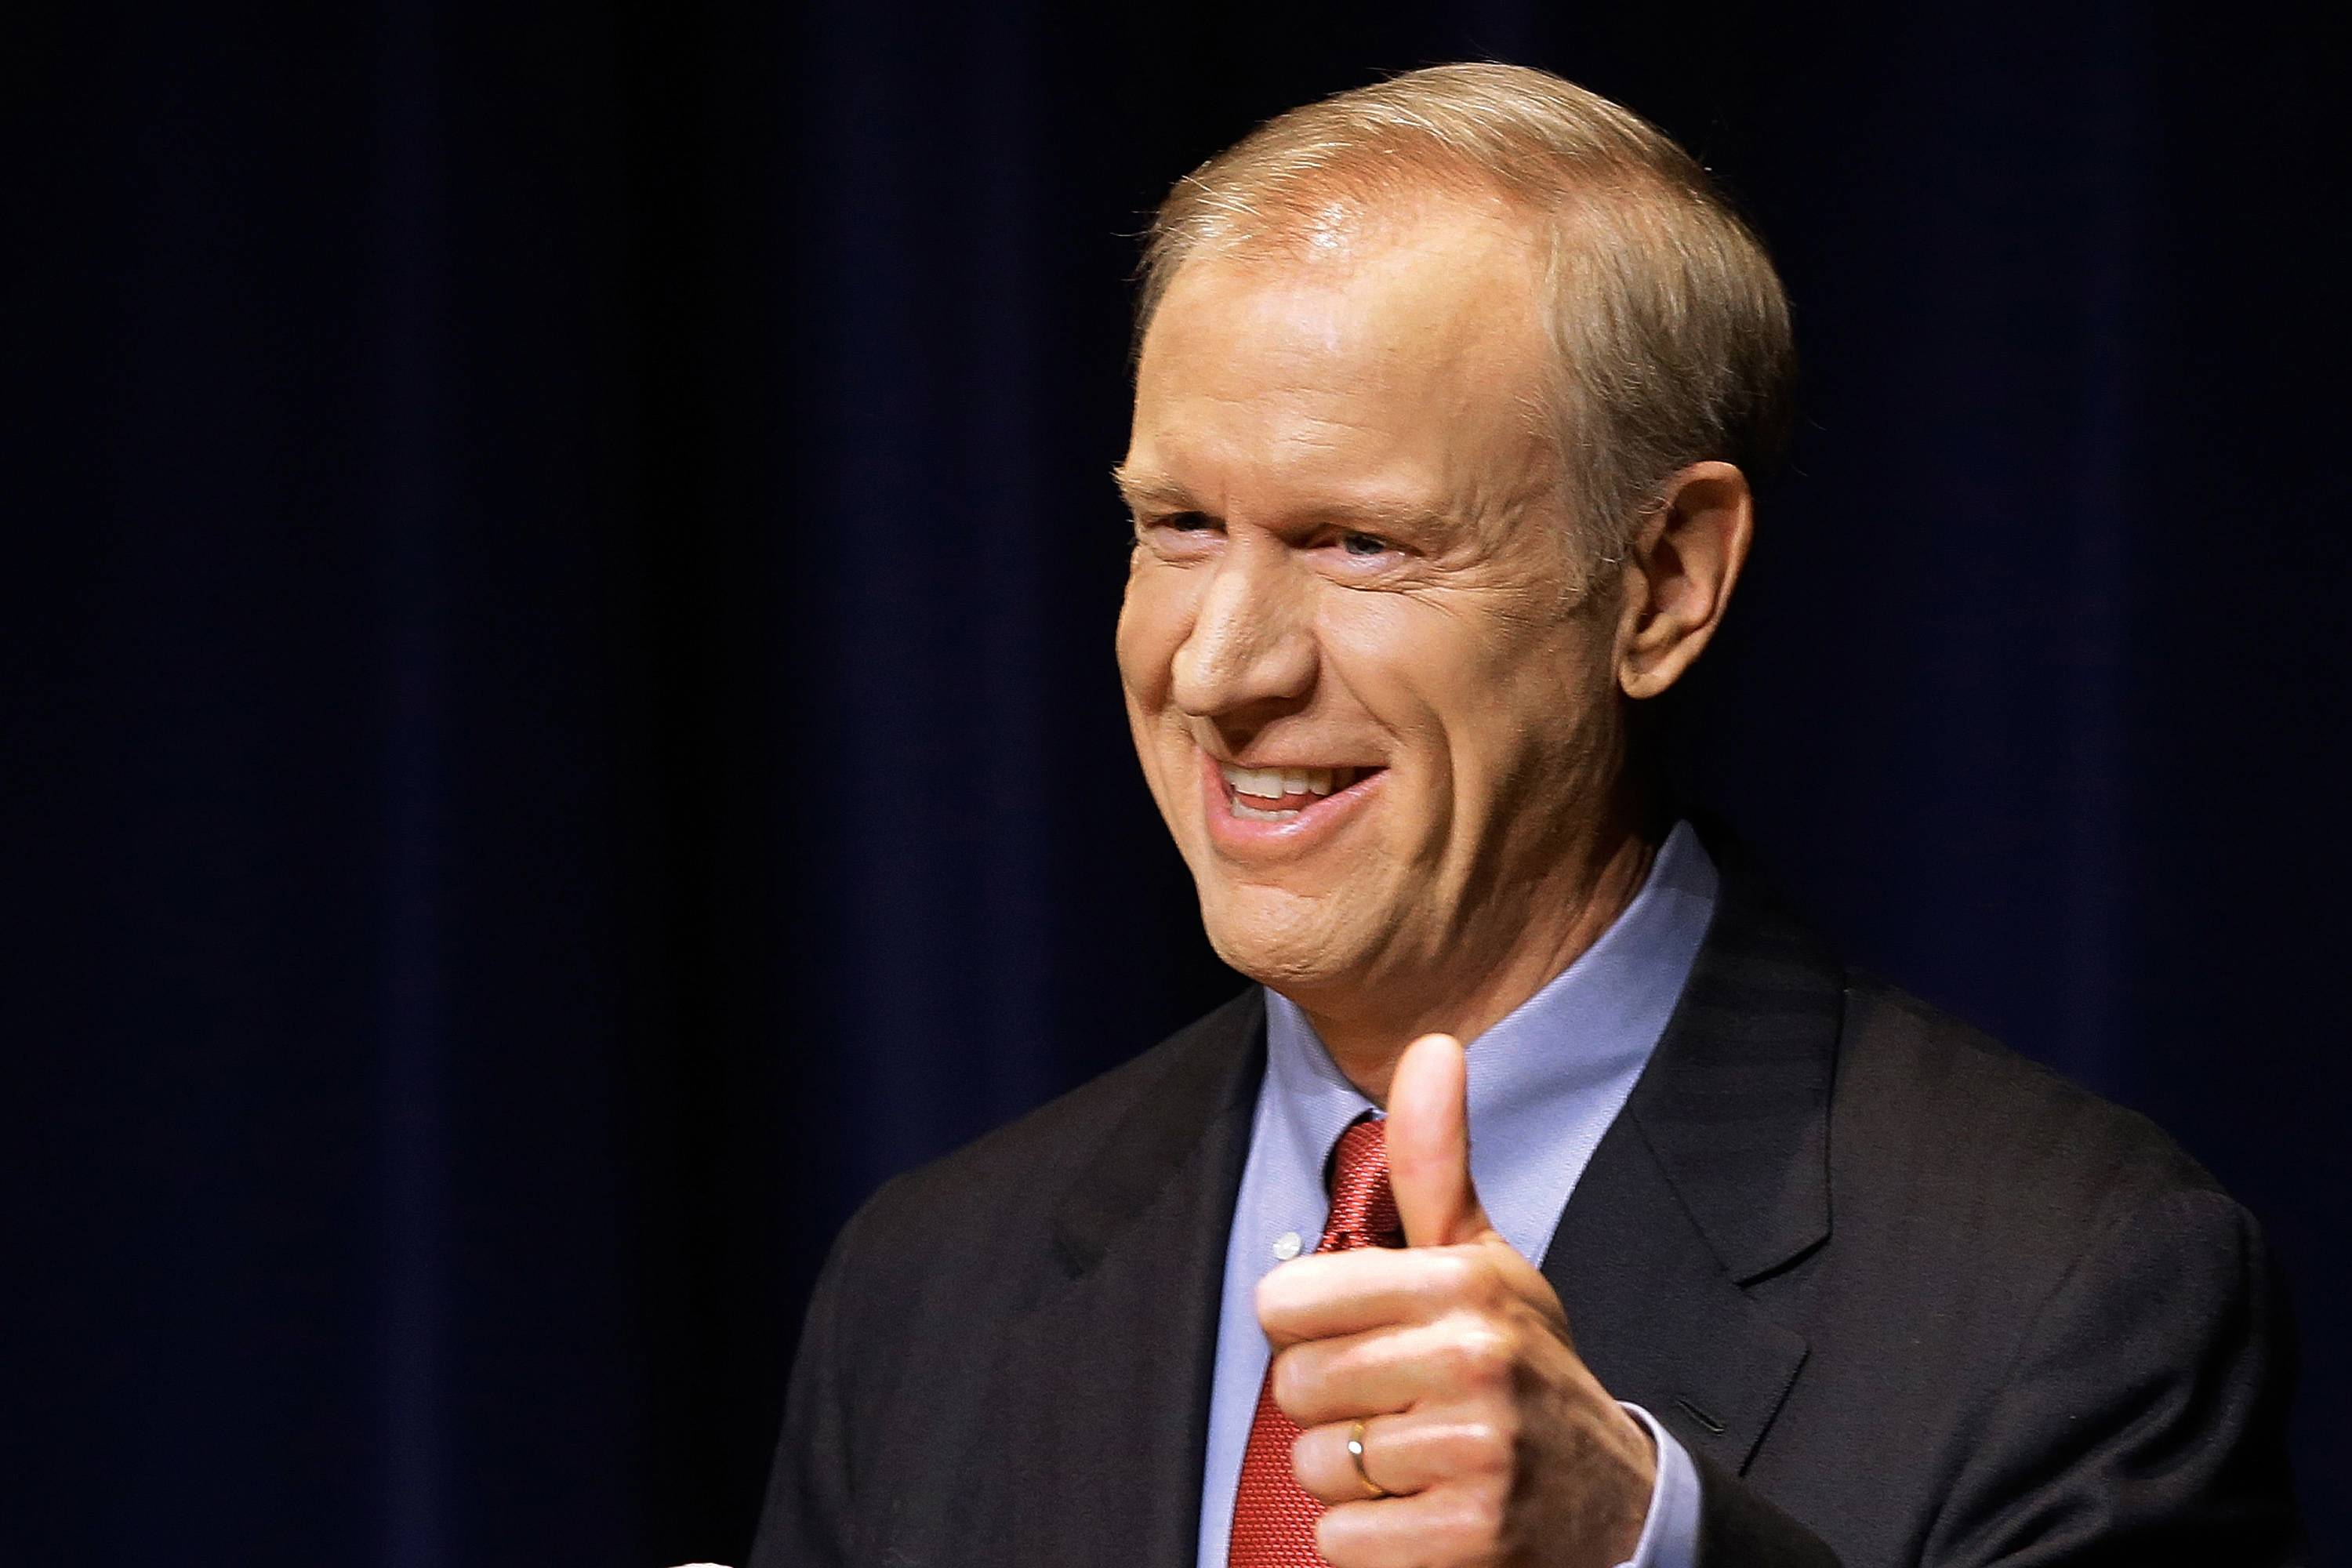 Rauner: Expect a very long extra session